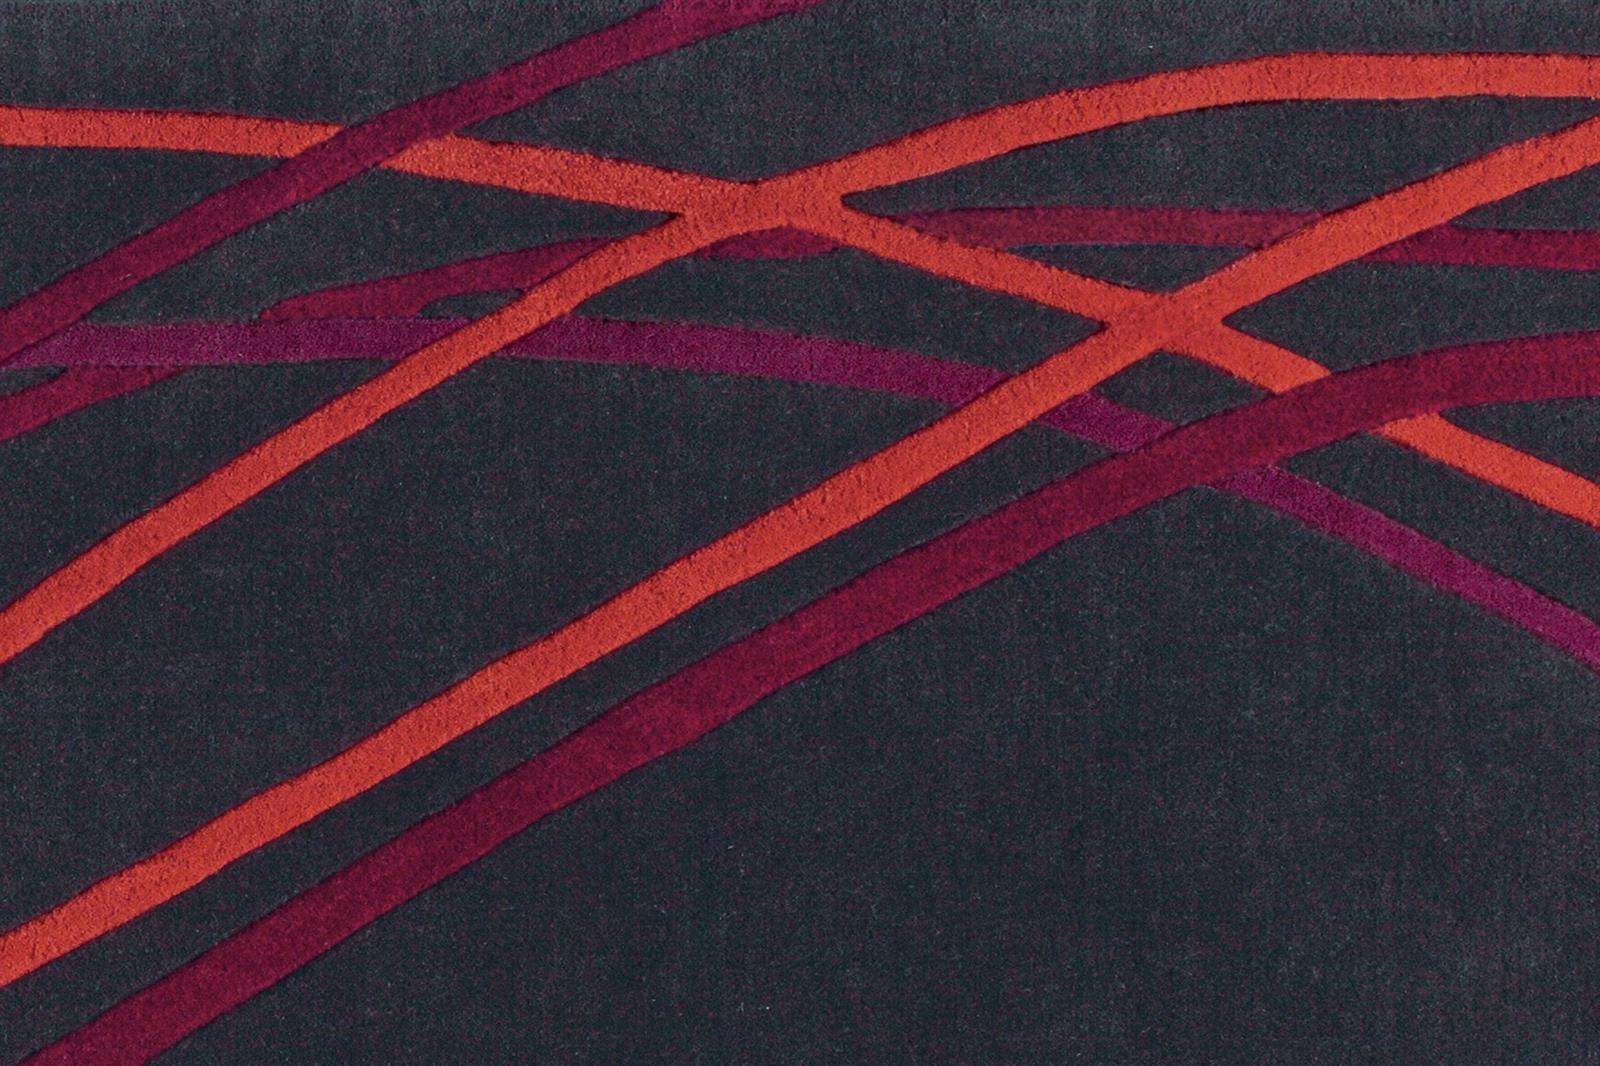 Dywan Serge Lesage Fluide Red And Anthracite